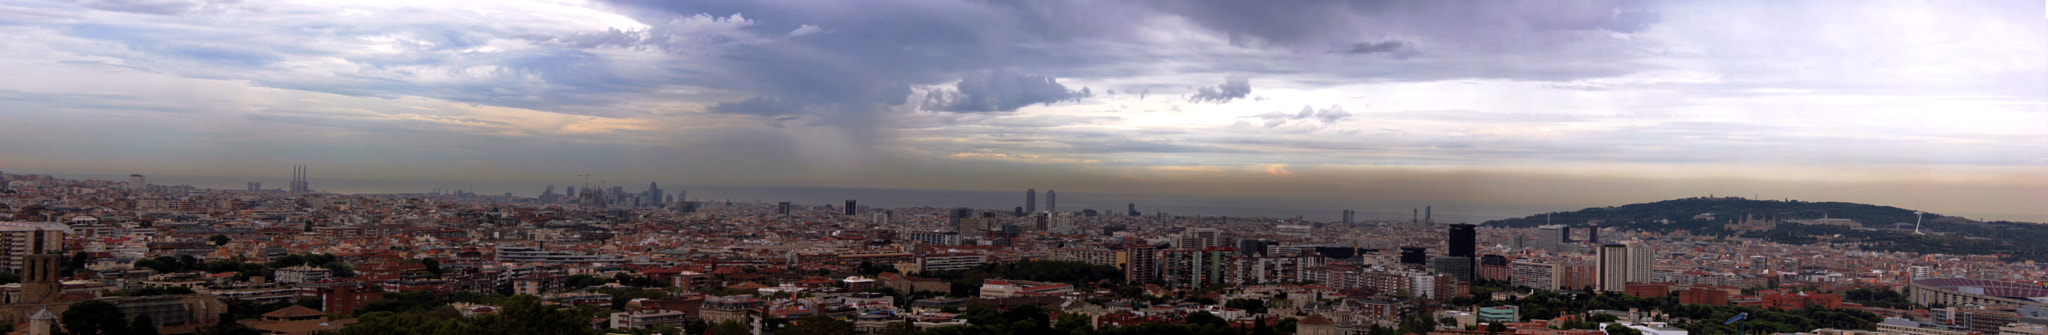 Photograph Barcelona Panorama by A J on 500px